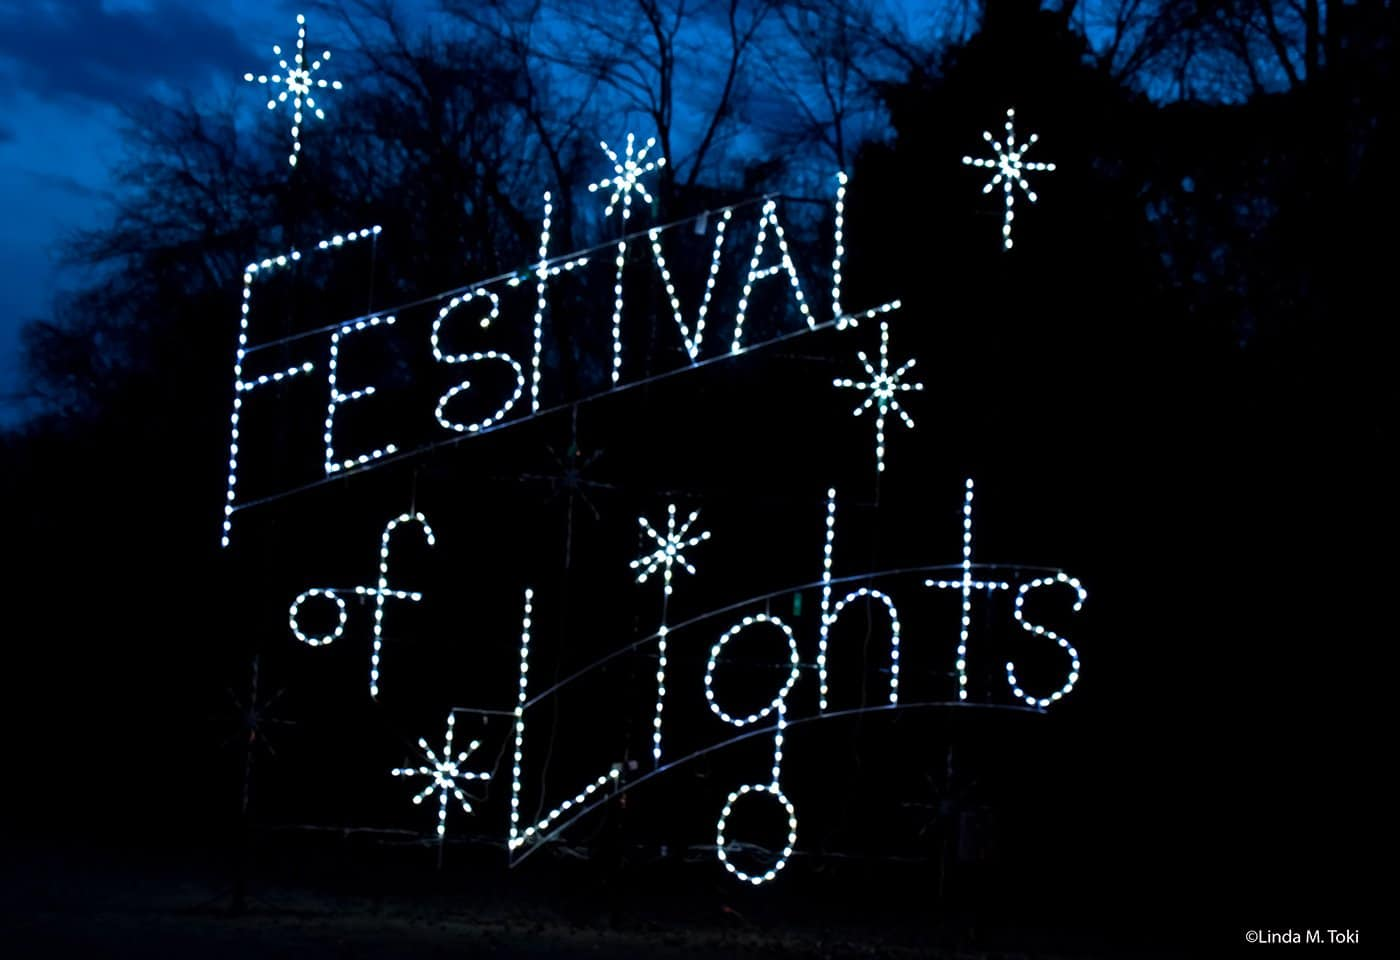 Bull Run Festival of Lights. Every year from Thanksgiving until just after New Year's Day, you can experience the Bull Run Festival of Lights, 2.5 miles illuminated by holiday light displays. Drive the festival route from the comfort of your car; turn out your headlights and just follow the magical glow.